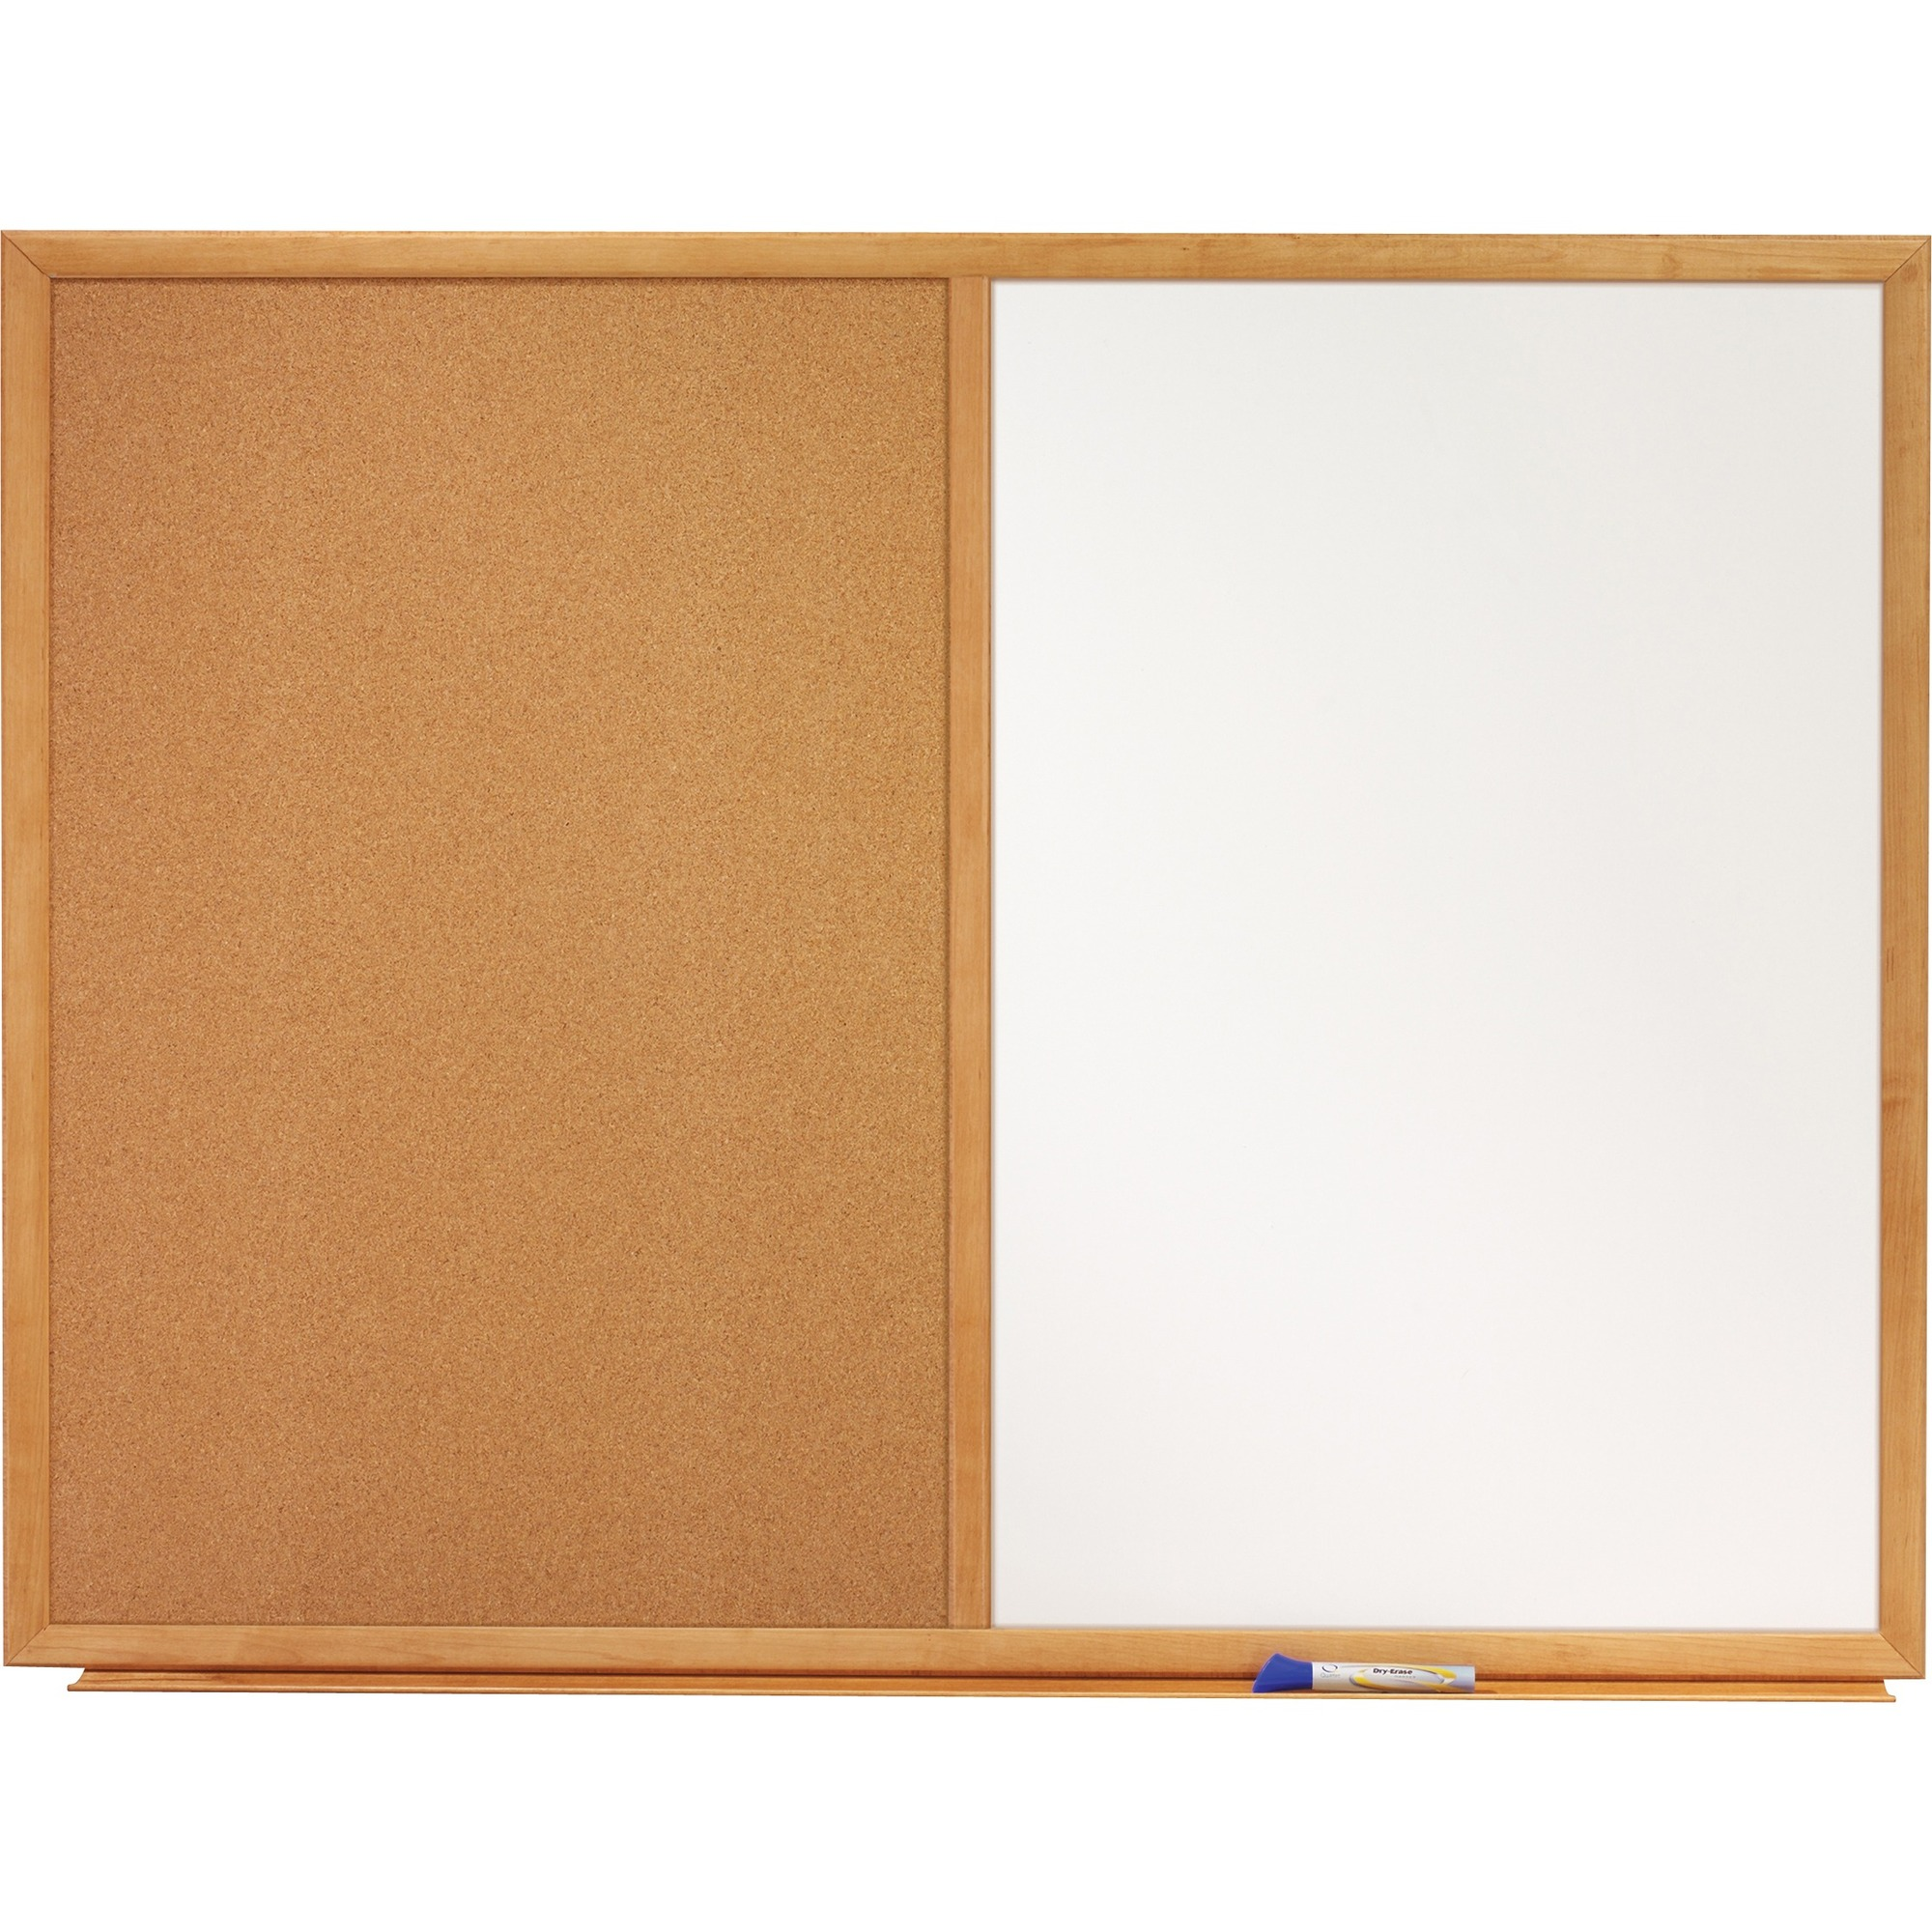 Acco Brands Corporation Quartet® Standard Combination Whiteboared/cork Bulletin Board, 3 X 2, Oak Finish Frame - 36 (3 Ft) Width X 24 (2 Ft) Height - White Melamine Surface - Oak Frame - Rectangle - Horizontal/vertical - 1 / Each